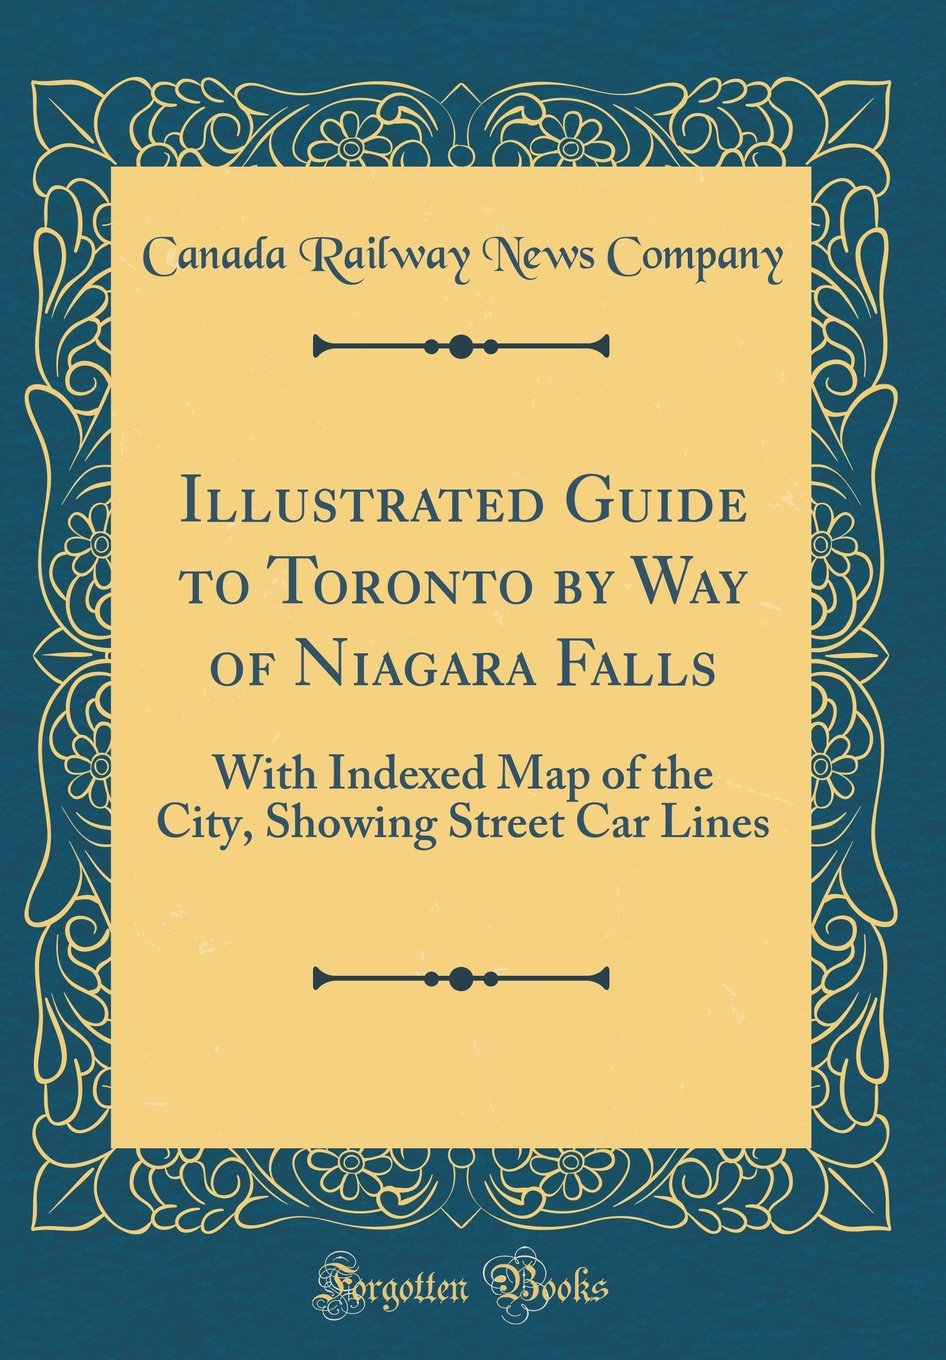 Illustrated Guide To Toronto By Way Of Niagara Falls With